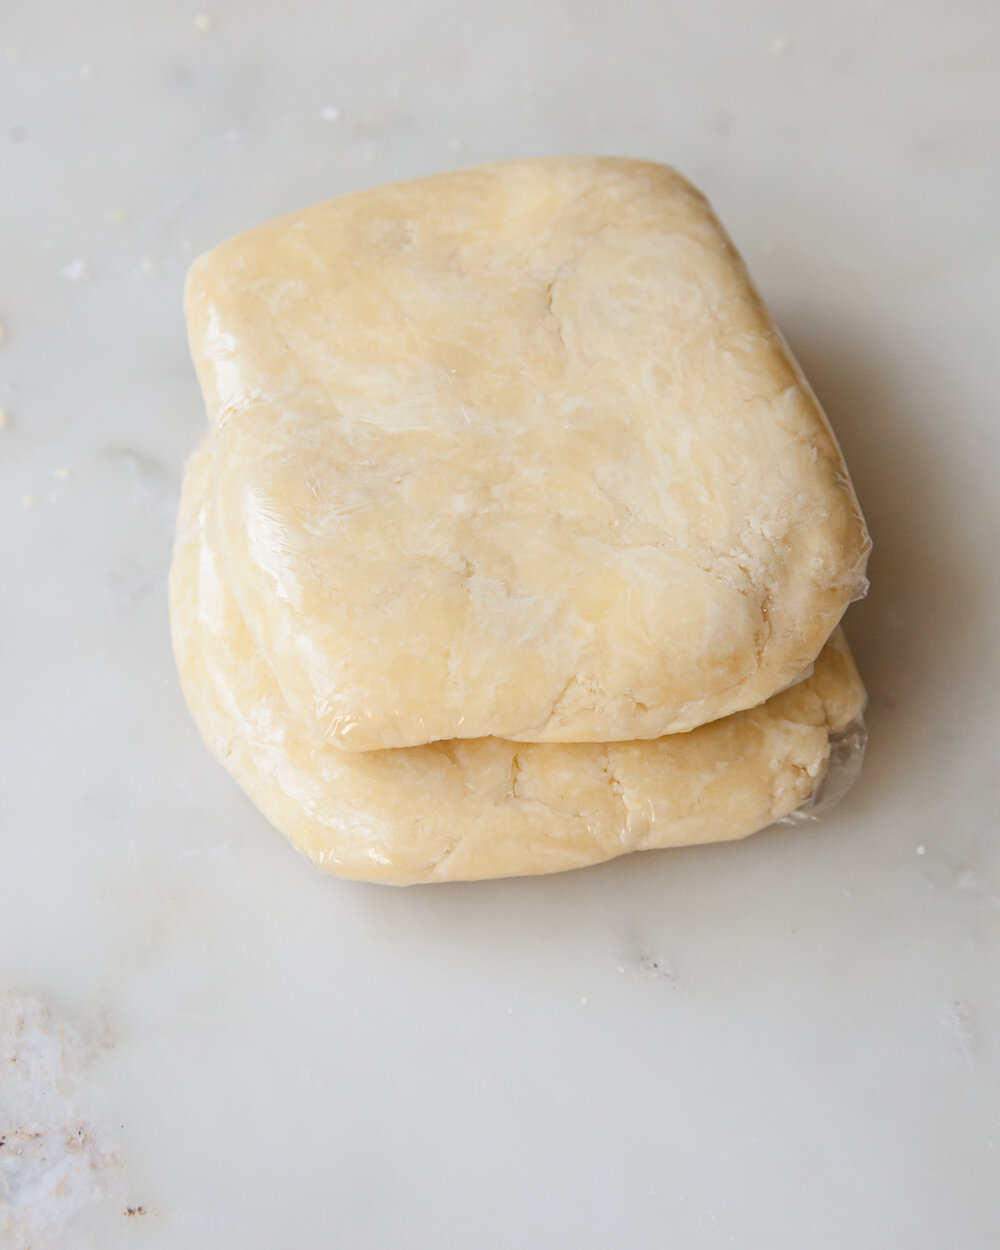 Chill the dough for at least 30 minutes but up to 3 days in the refrigerator. Freeze for up to 3 months, wrapped and sealed.